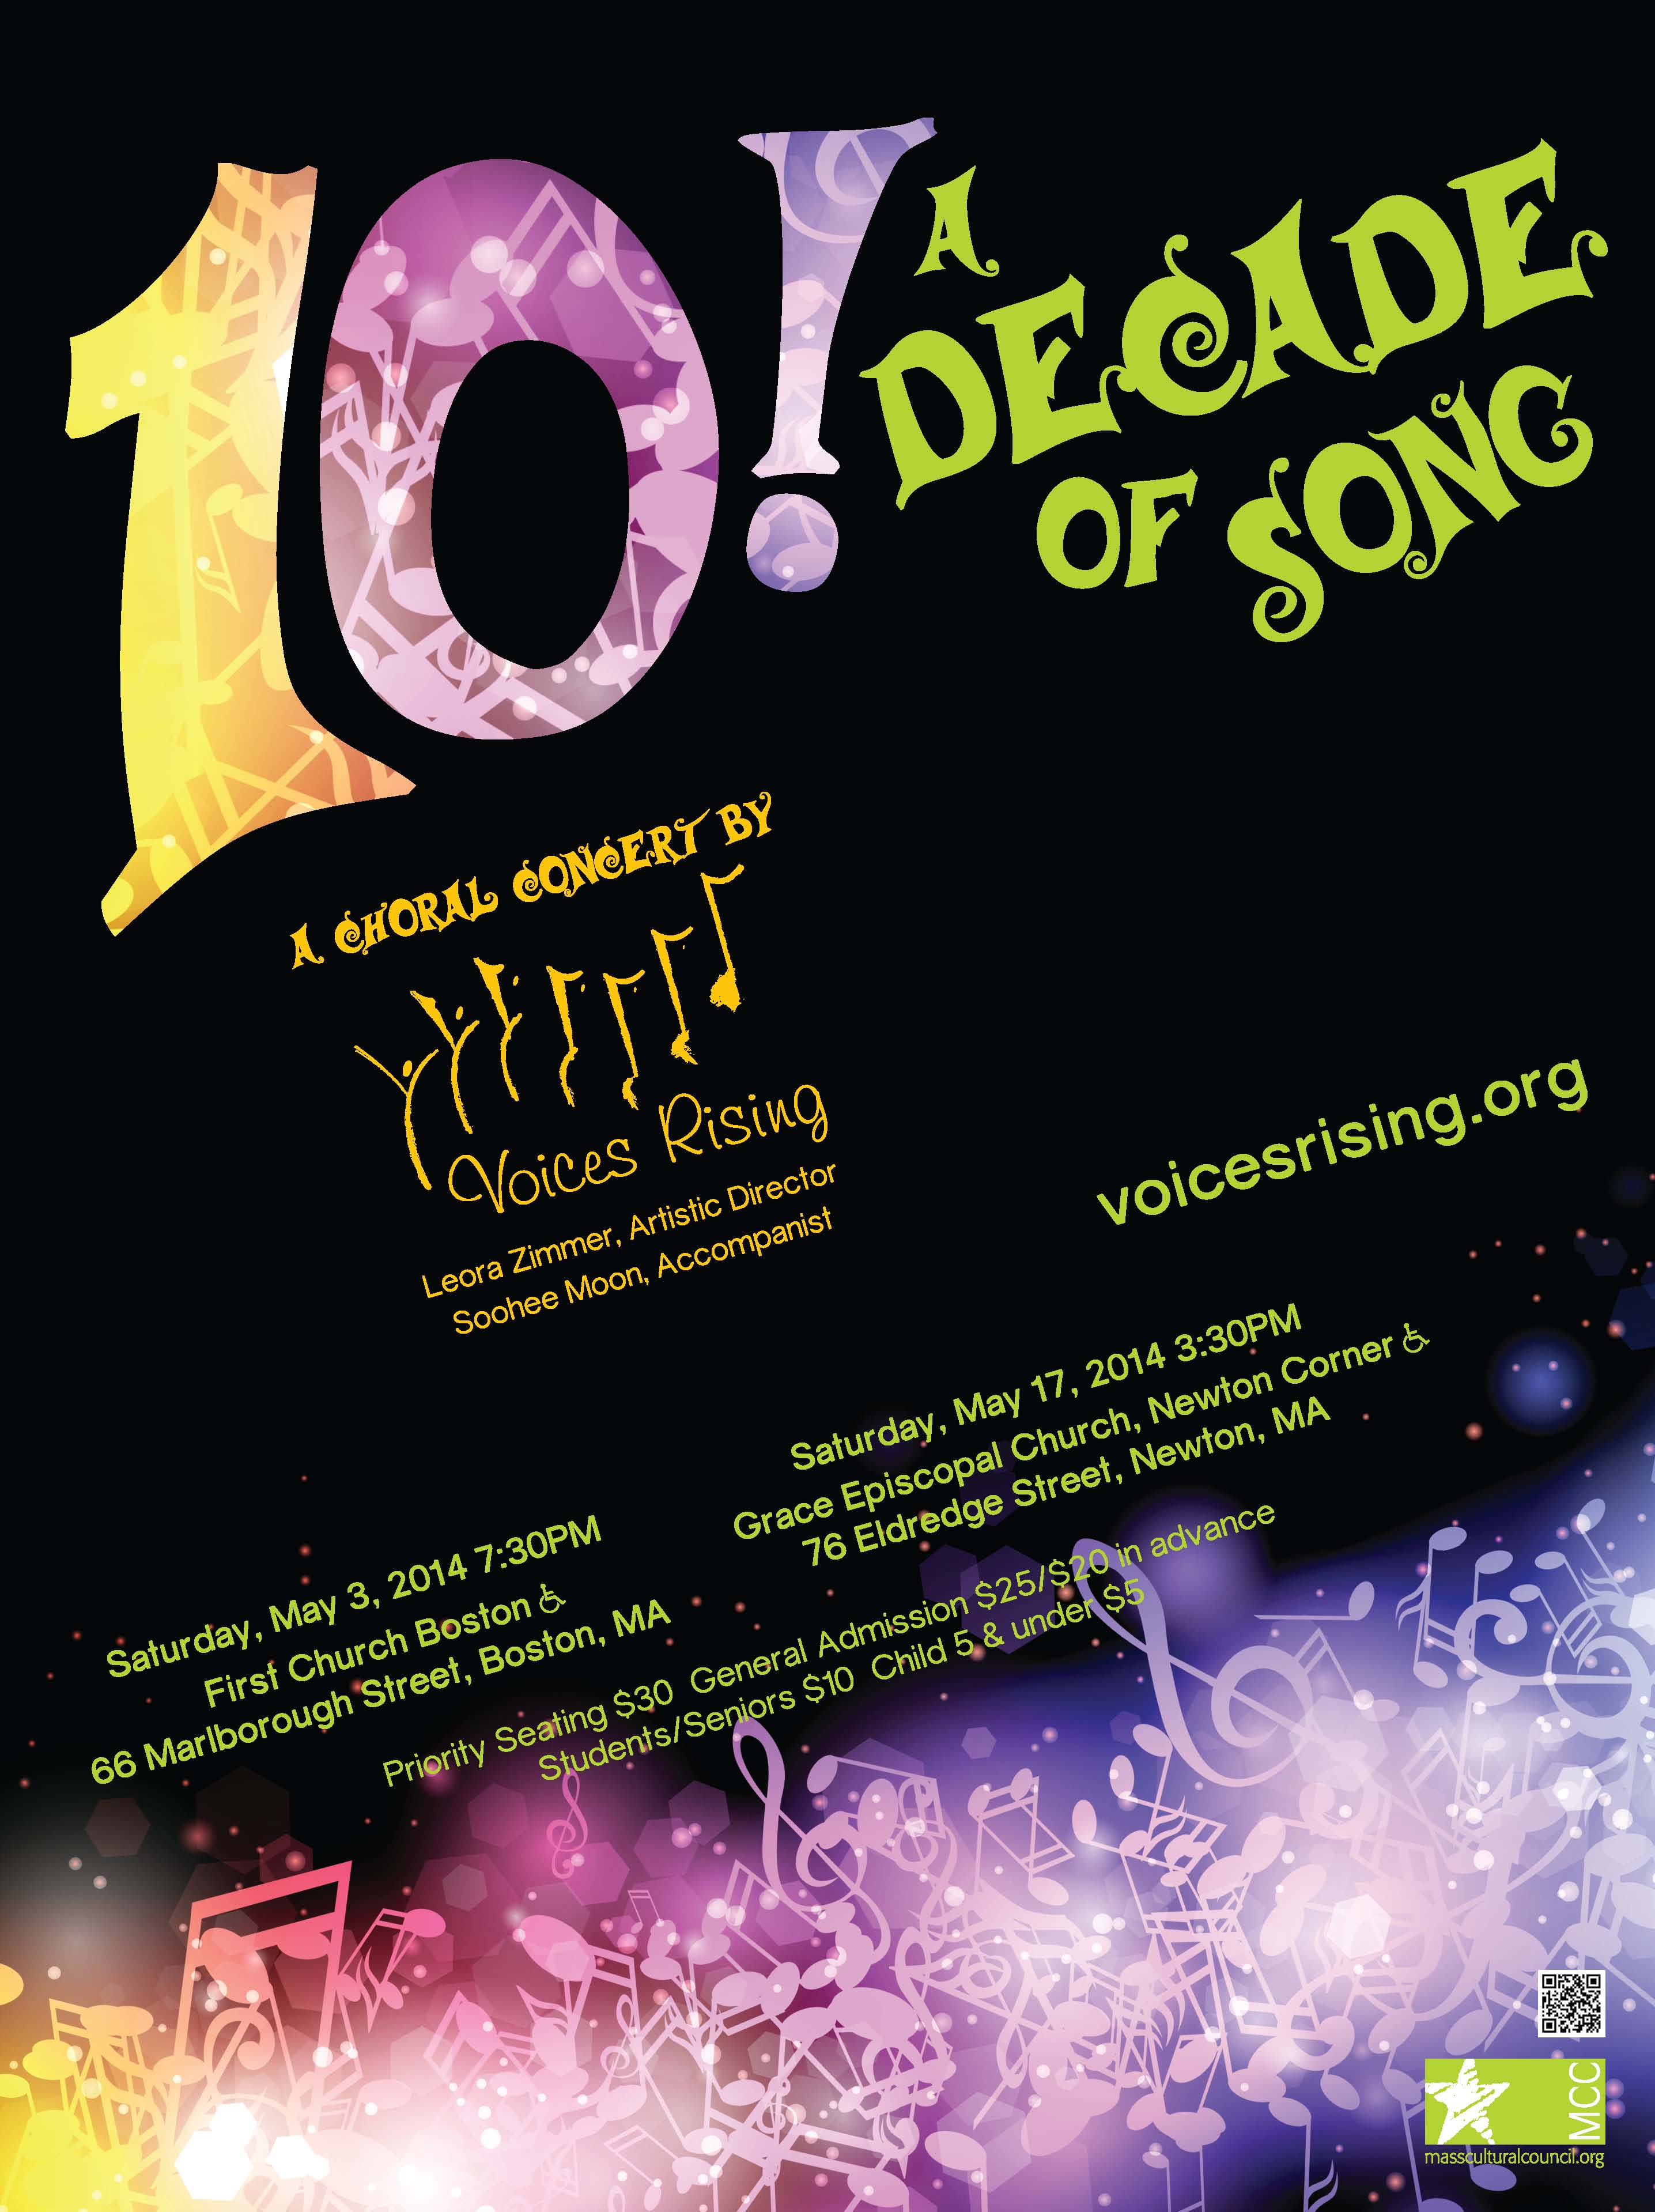 10!: A Decade of Song